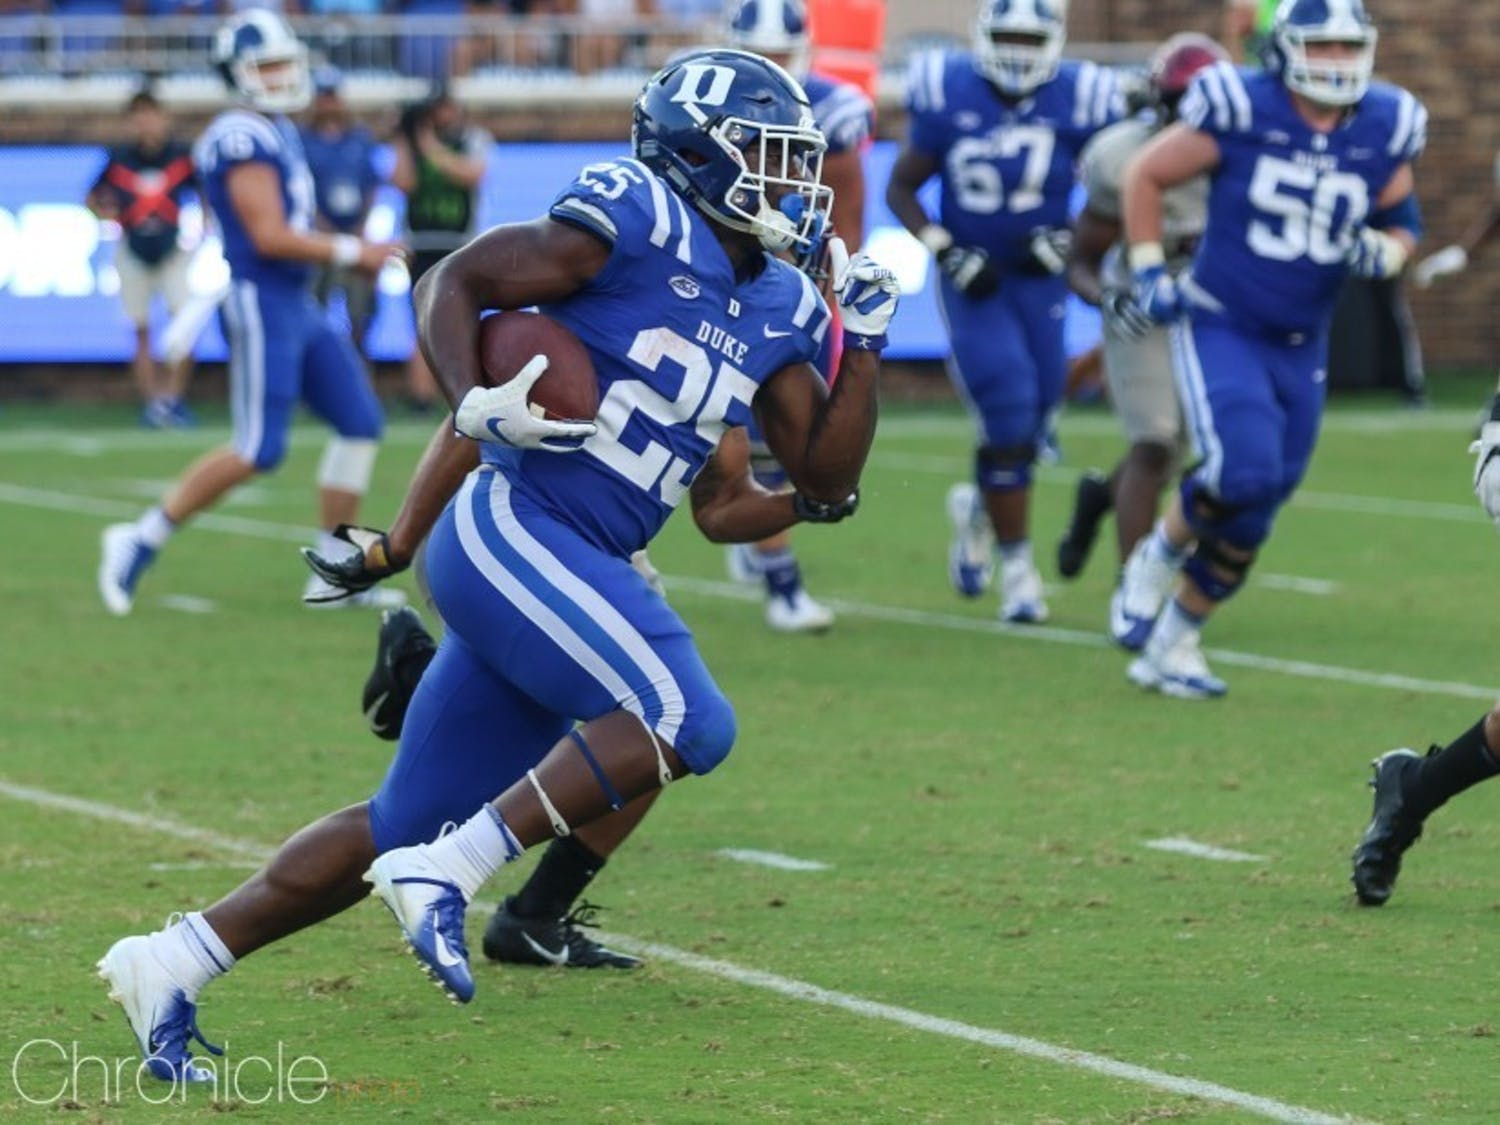 With T.J. Rahming gone, Deon Jackson looks to become the Blue Devils' next dangerous all-purpose threat